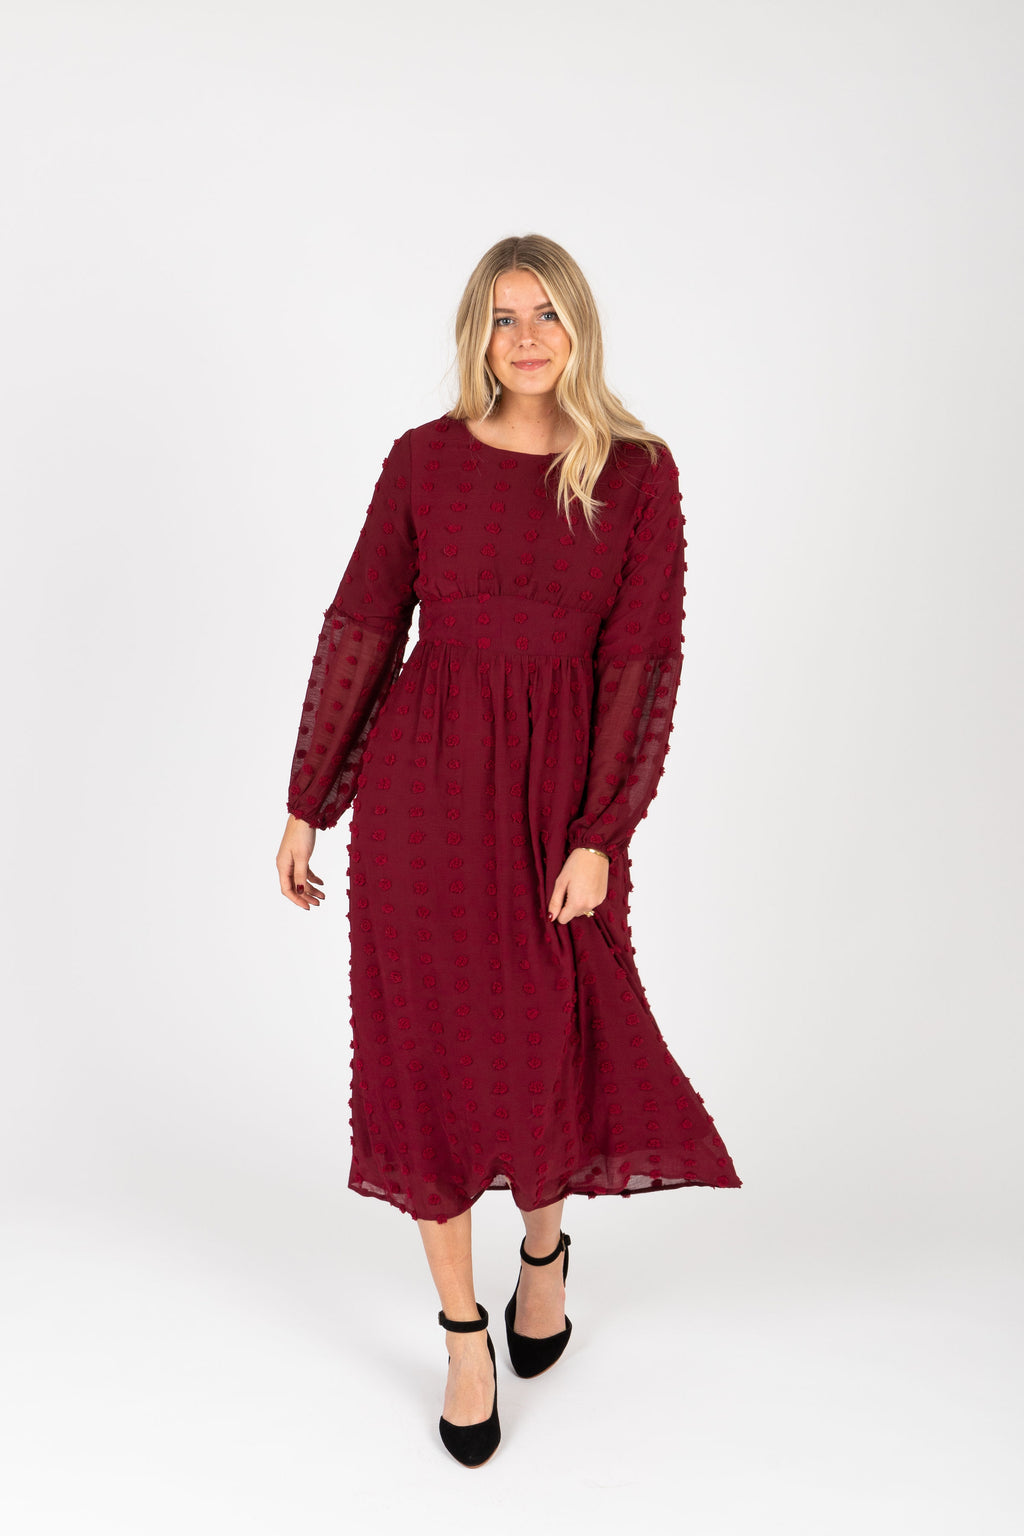 Piper & Scoot: The Jane Swiss Dot Empire Dress in Burgundy, studio shoot; front view